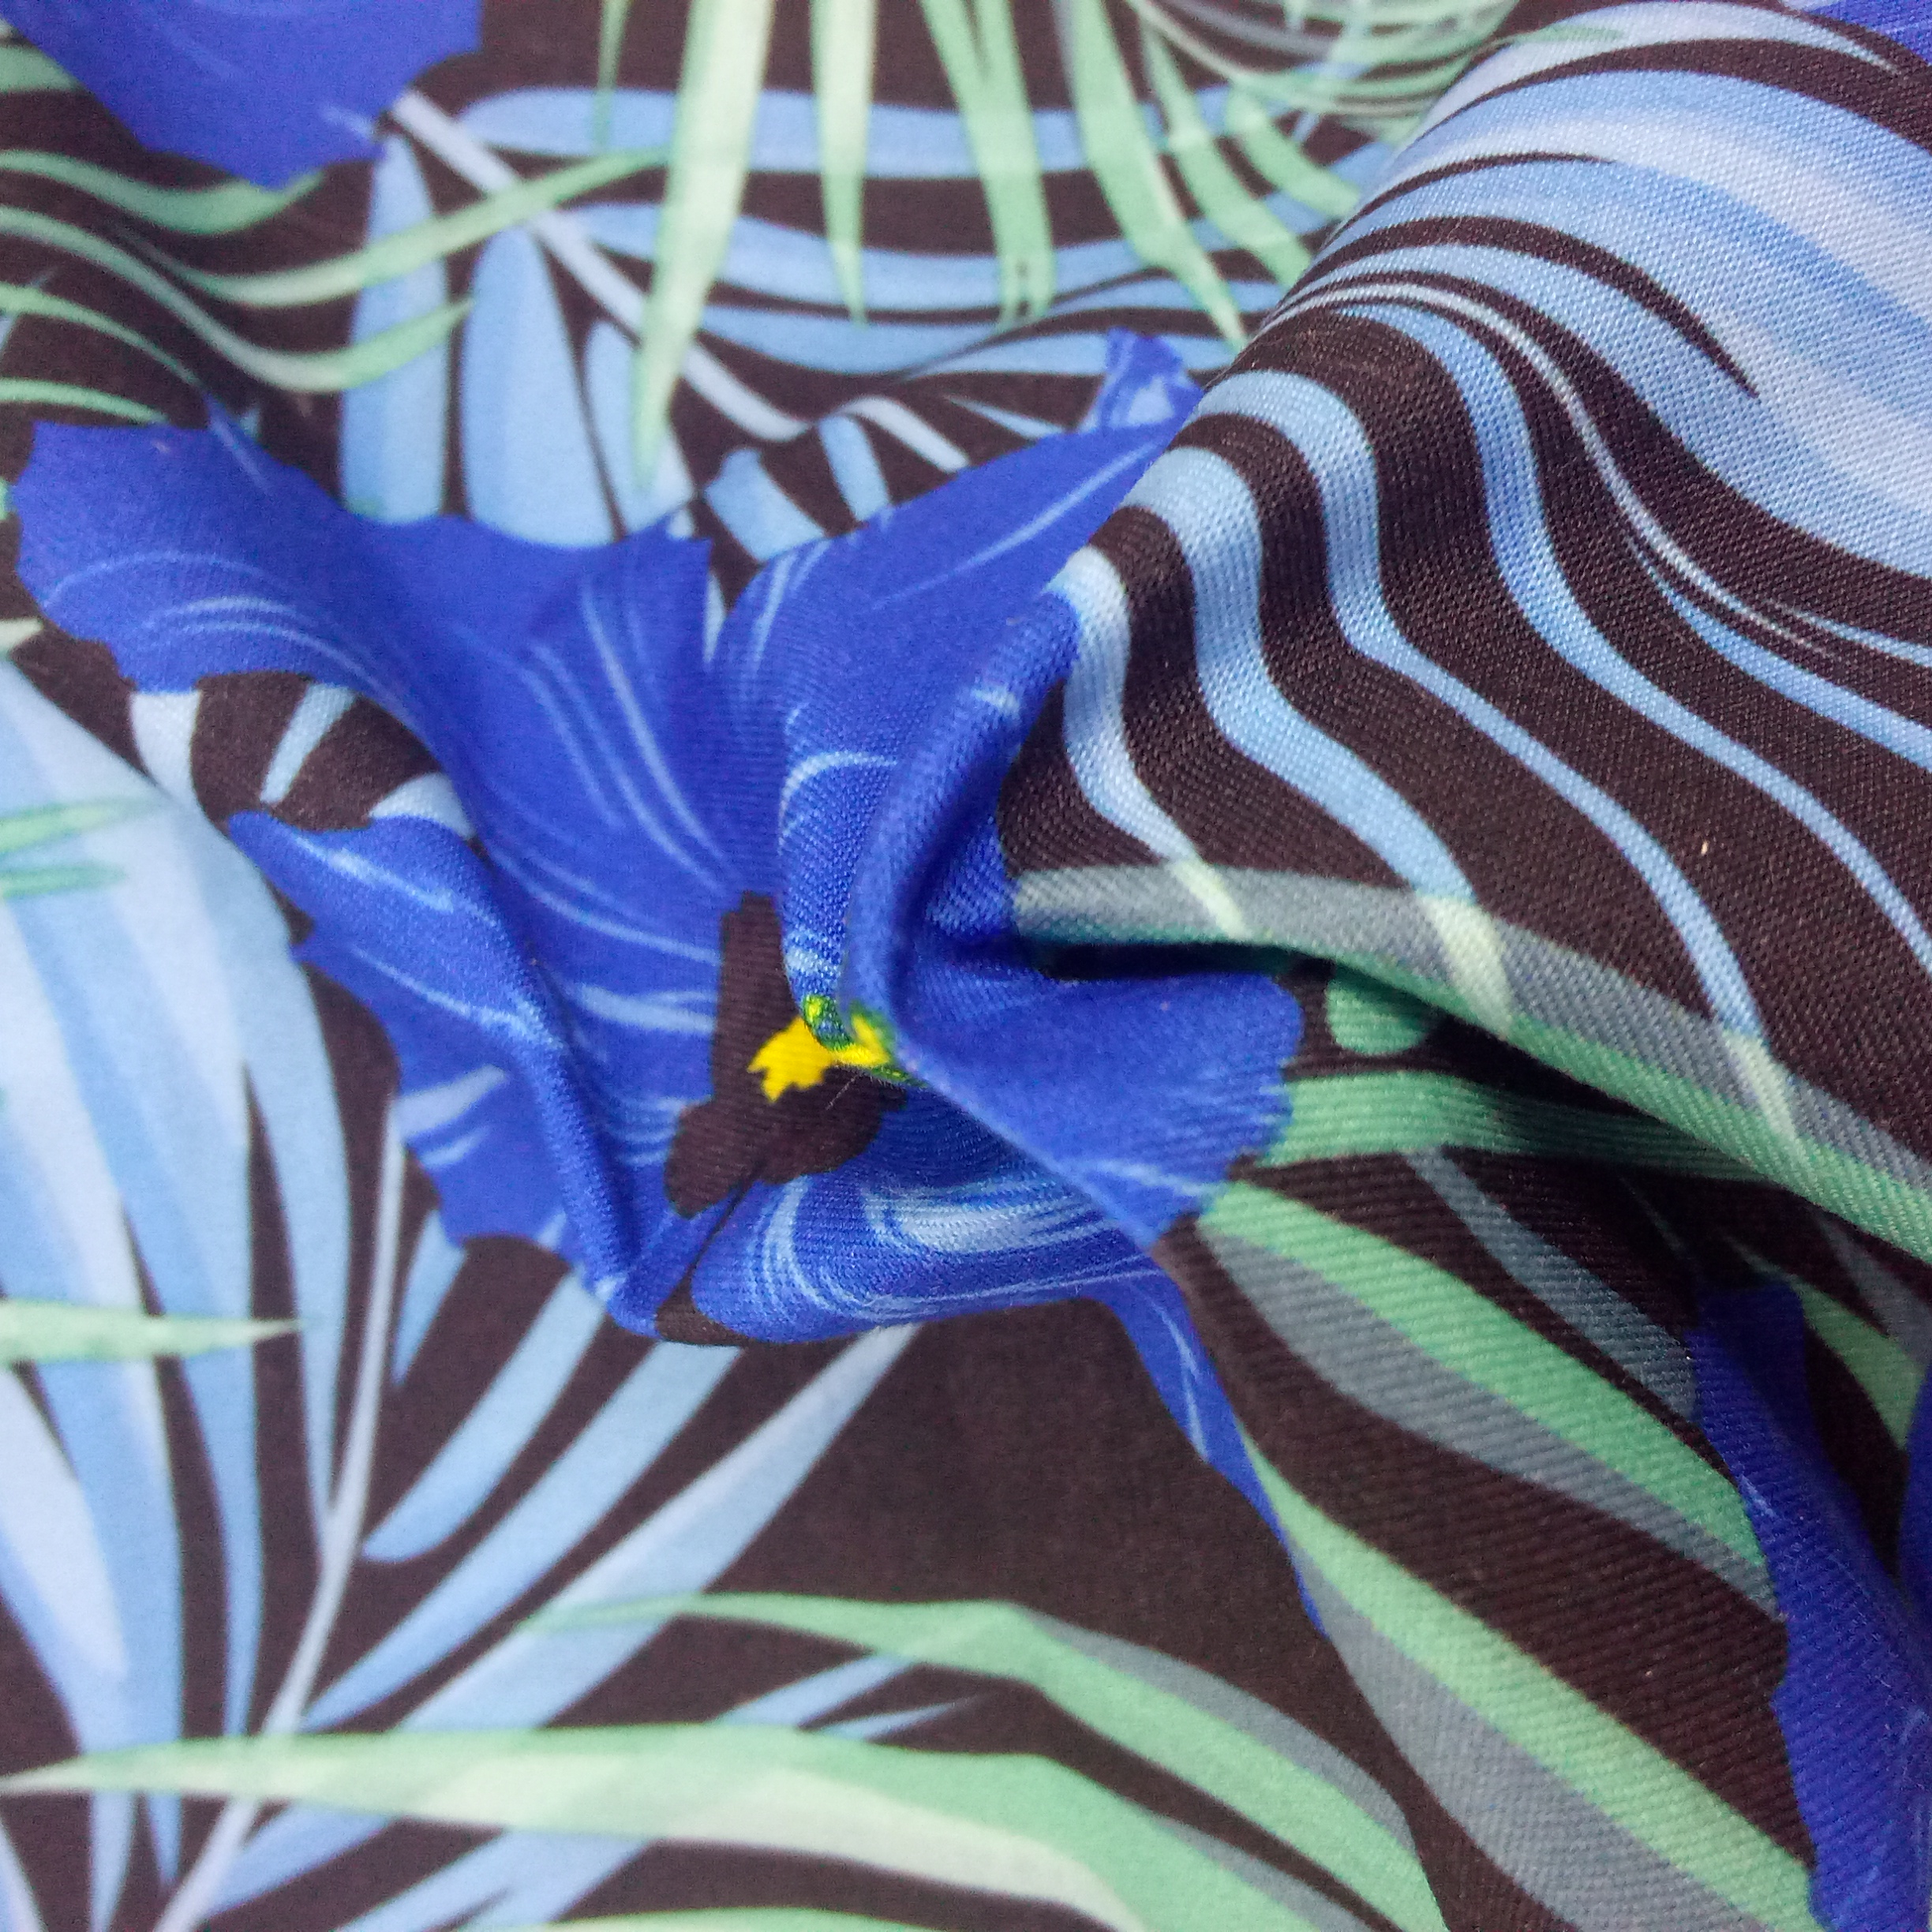 100% <strong>Polyester</strong> Soft Shiny Pattered Stain Flower Deying Fabric For Dress Or Lining